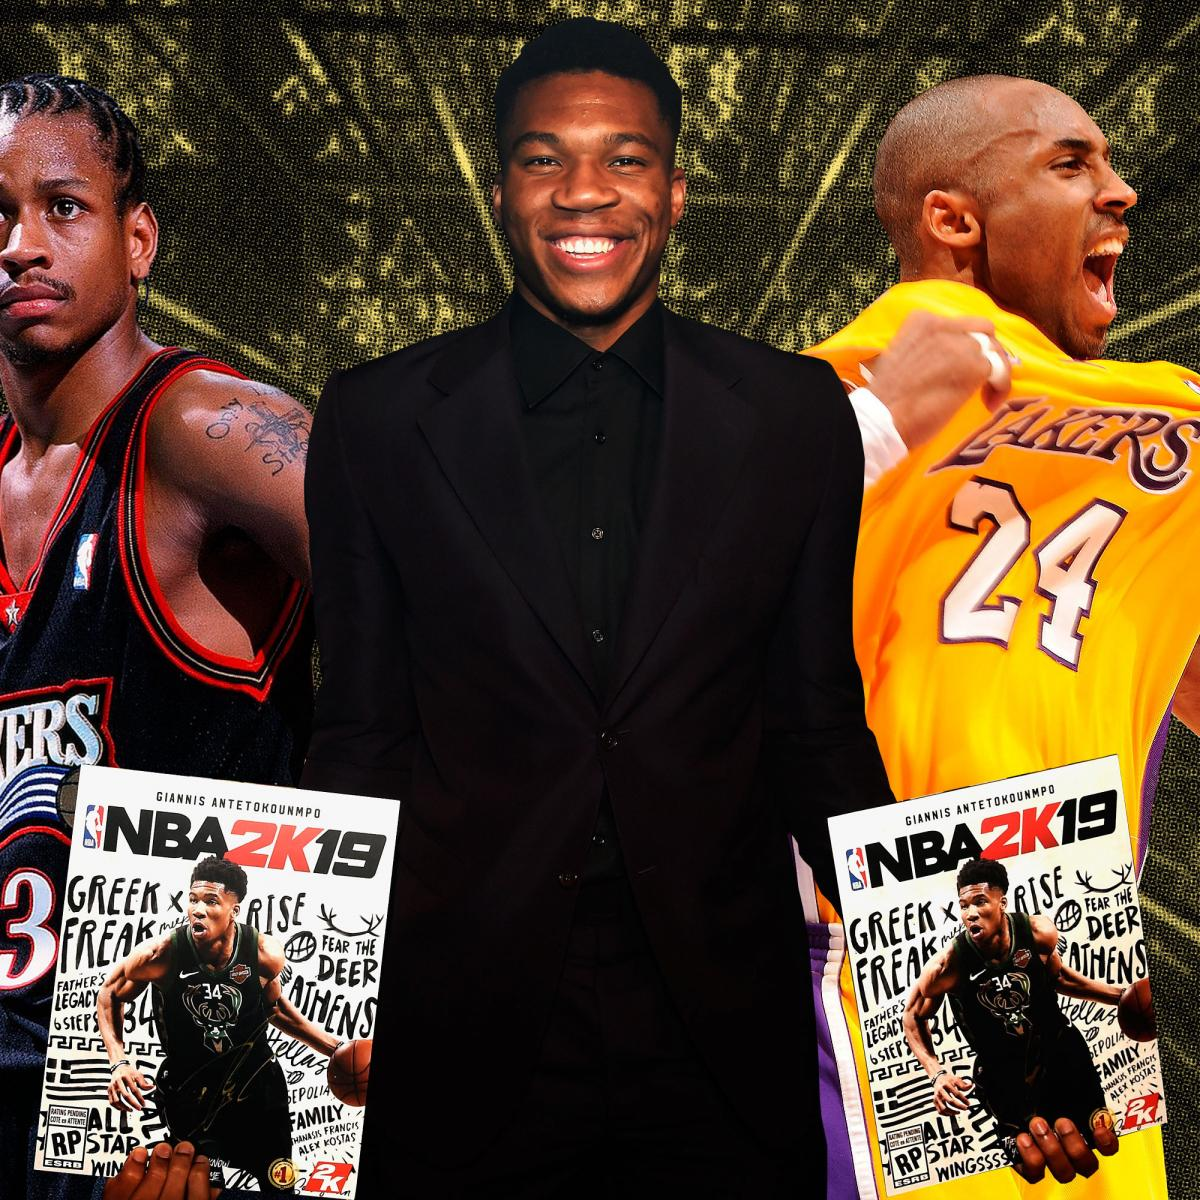 e4eeda7b948 Inside NBA 2K s Journey to the Top of Sports Gaming